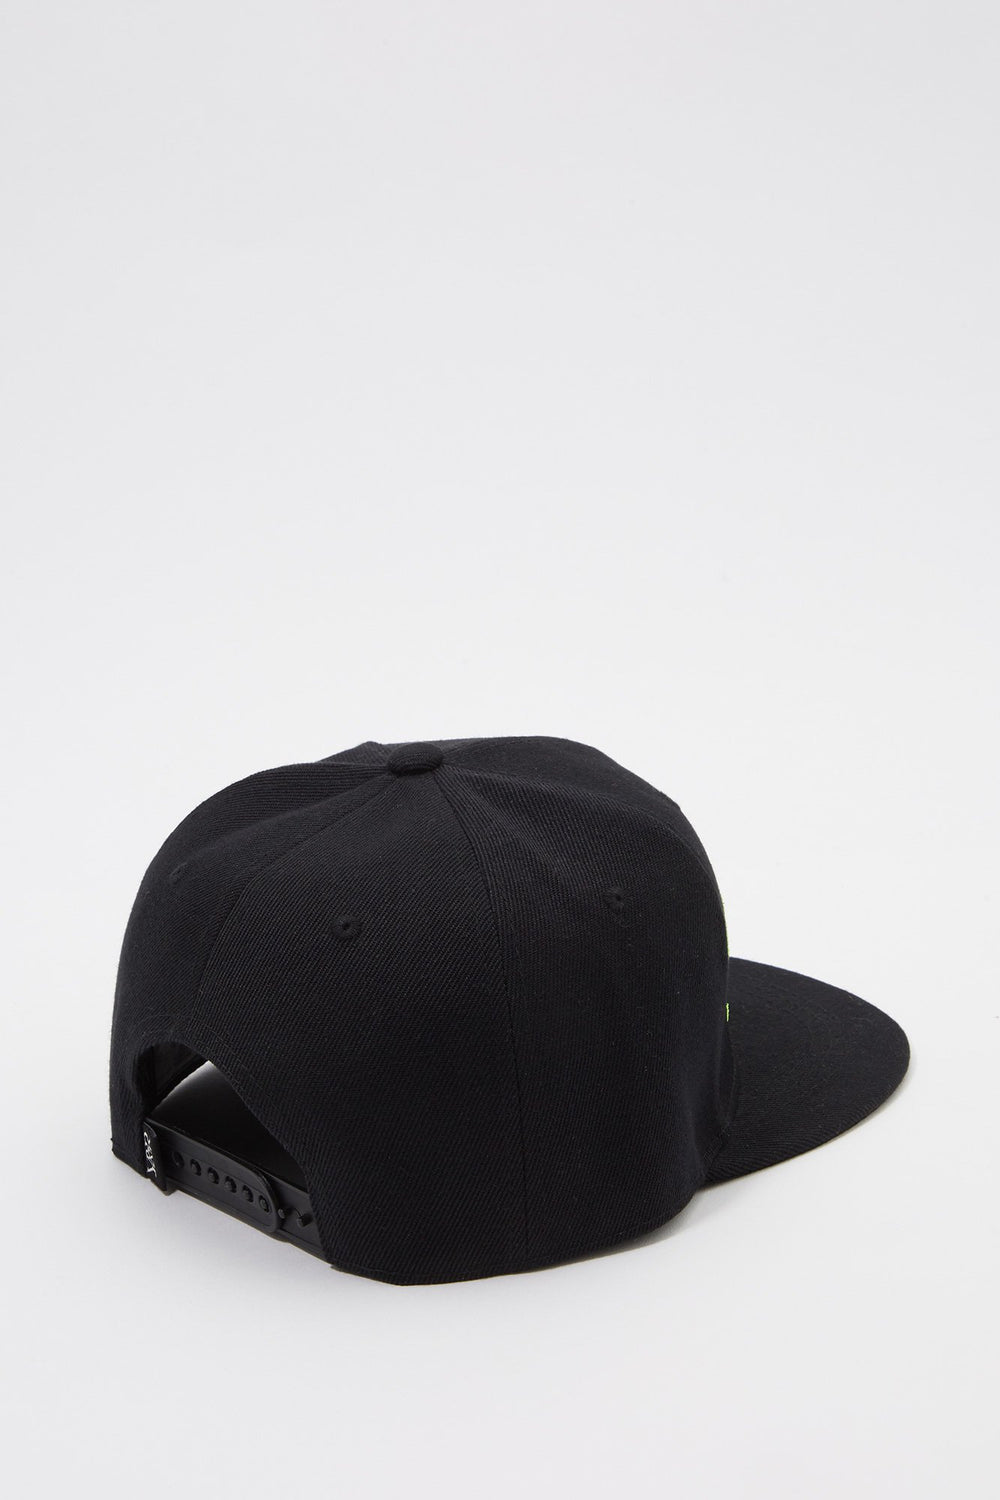 Casquette Fluo Young & Reckless Homme Noir